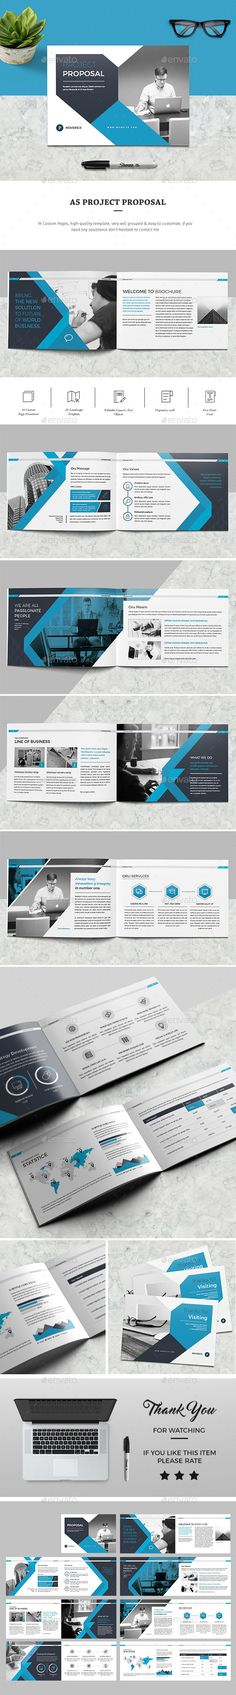 Resume CV Print Template V1 Design, Resume cv and Photos - it project proposal template free download